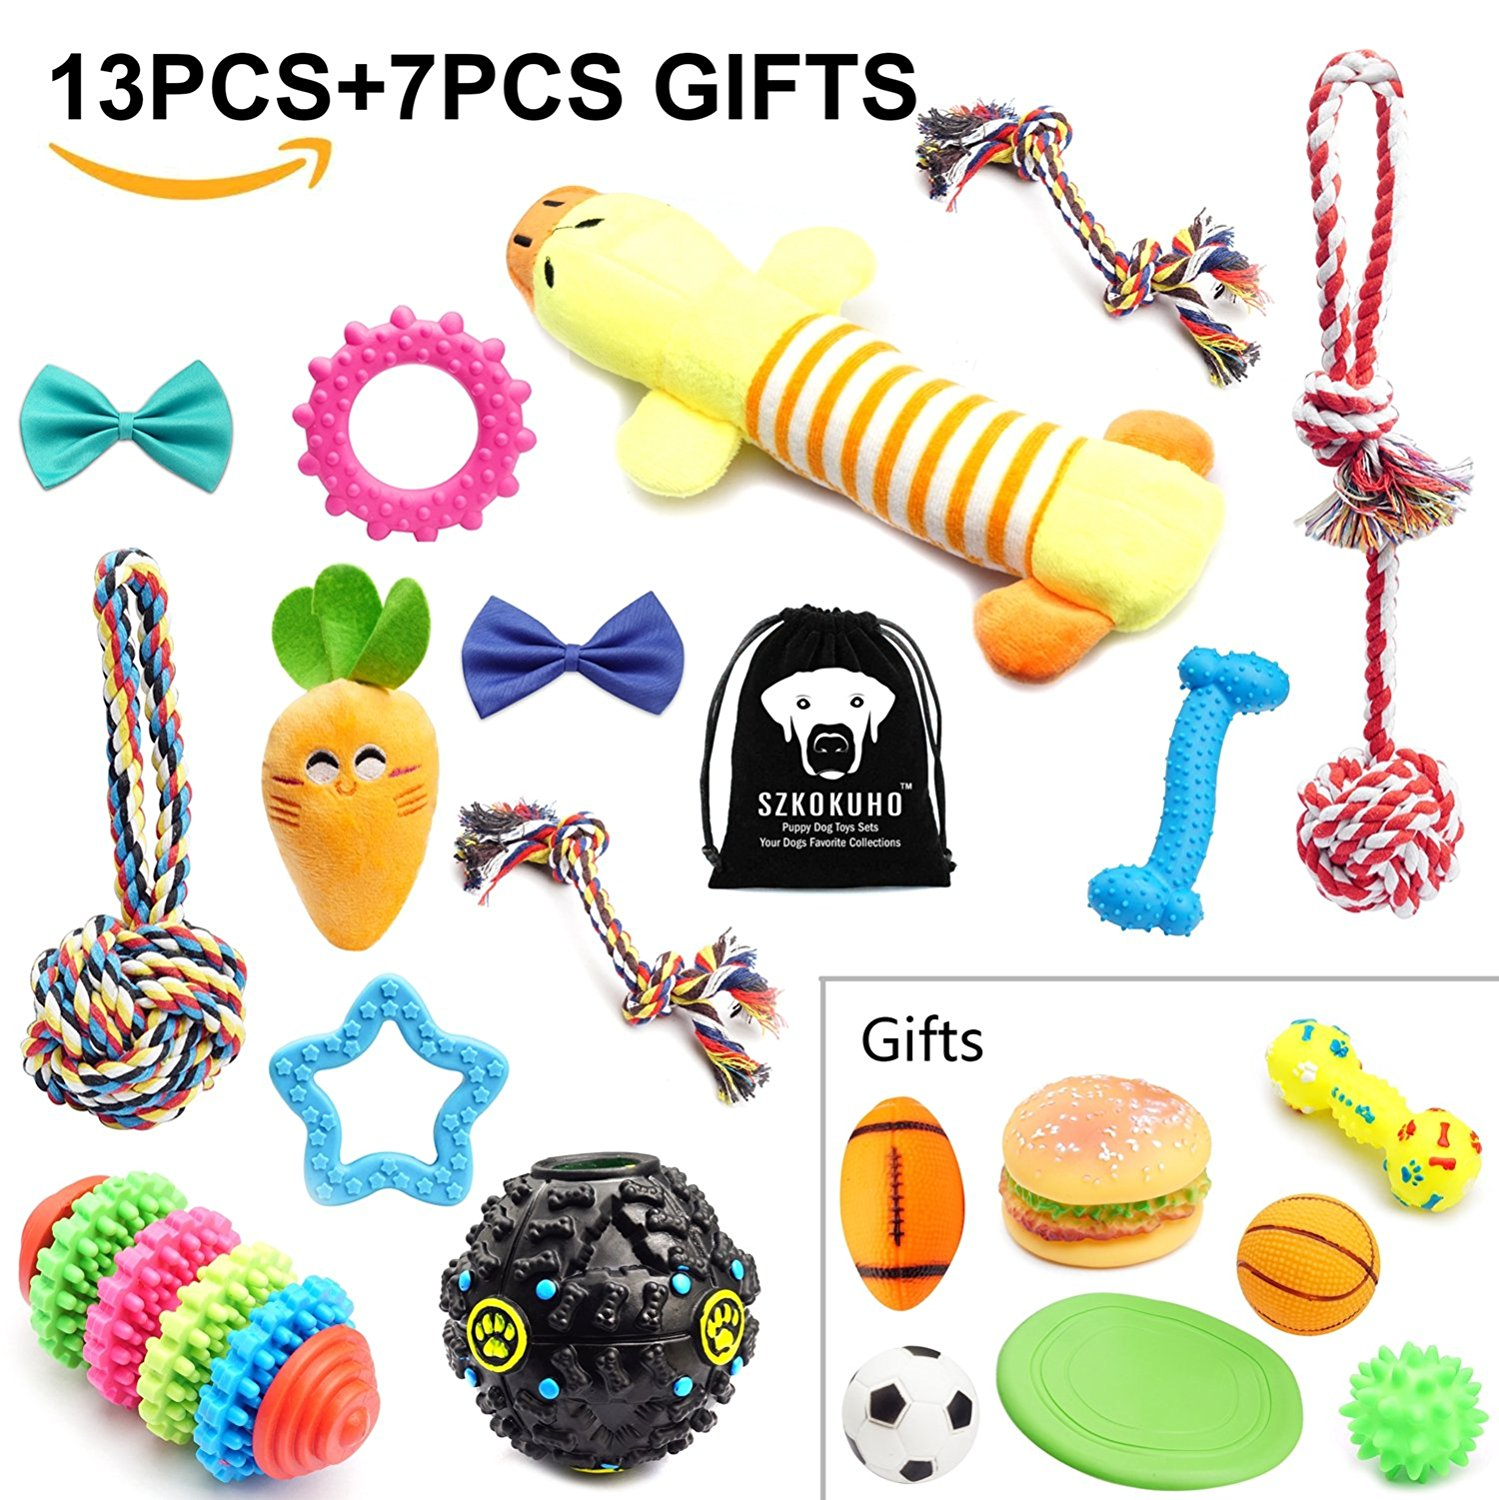 SZKOKUHO 10-20 Pack Puppy Dog Chew Toys Set Dog Accessories —Plush Toys,Dog Ropes,Squeaky Toys,Puppy Chew Toys,Dog Balls,Dog Bone Toy,Dog Flying Discs,Dog Bow Tie,For Small to Some Medium Dogs